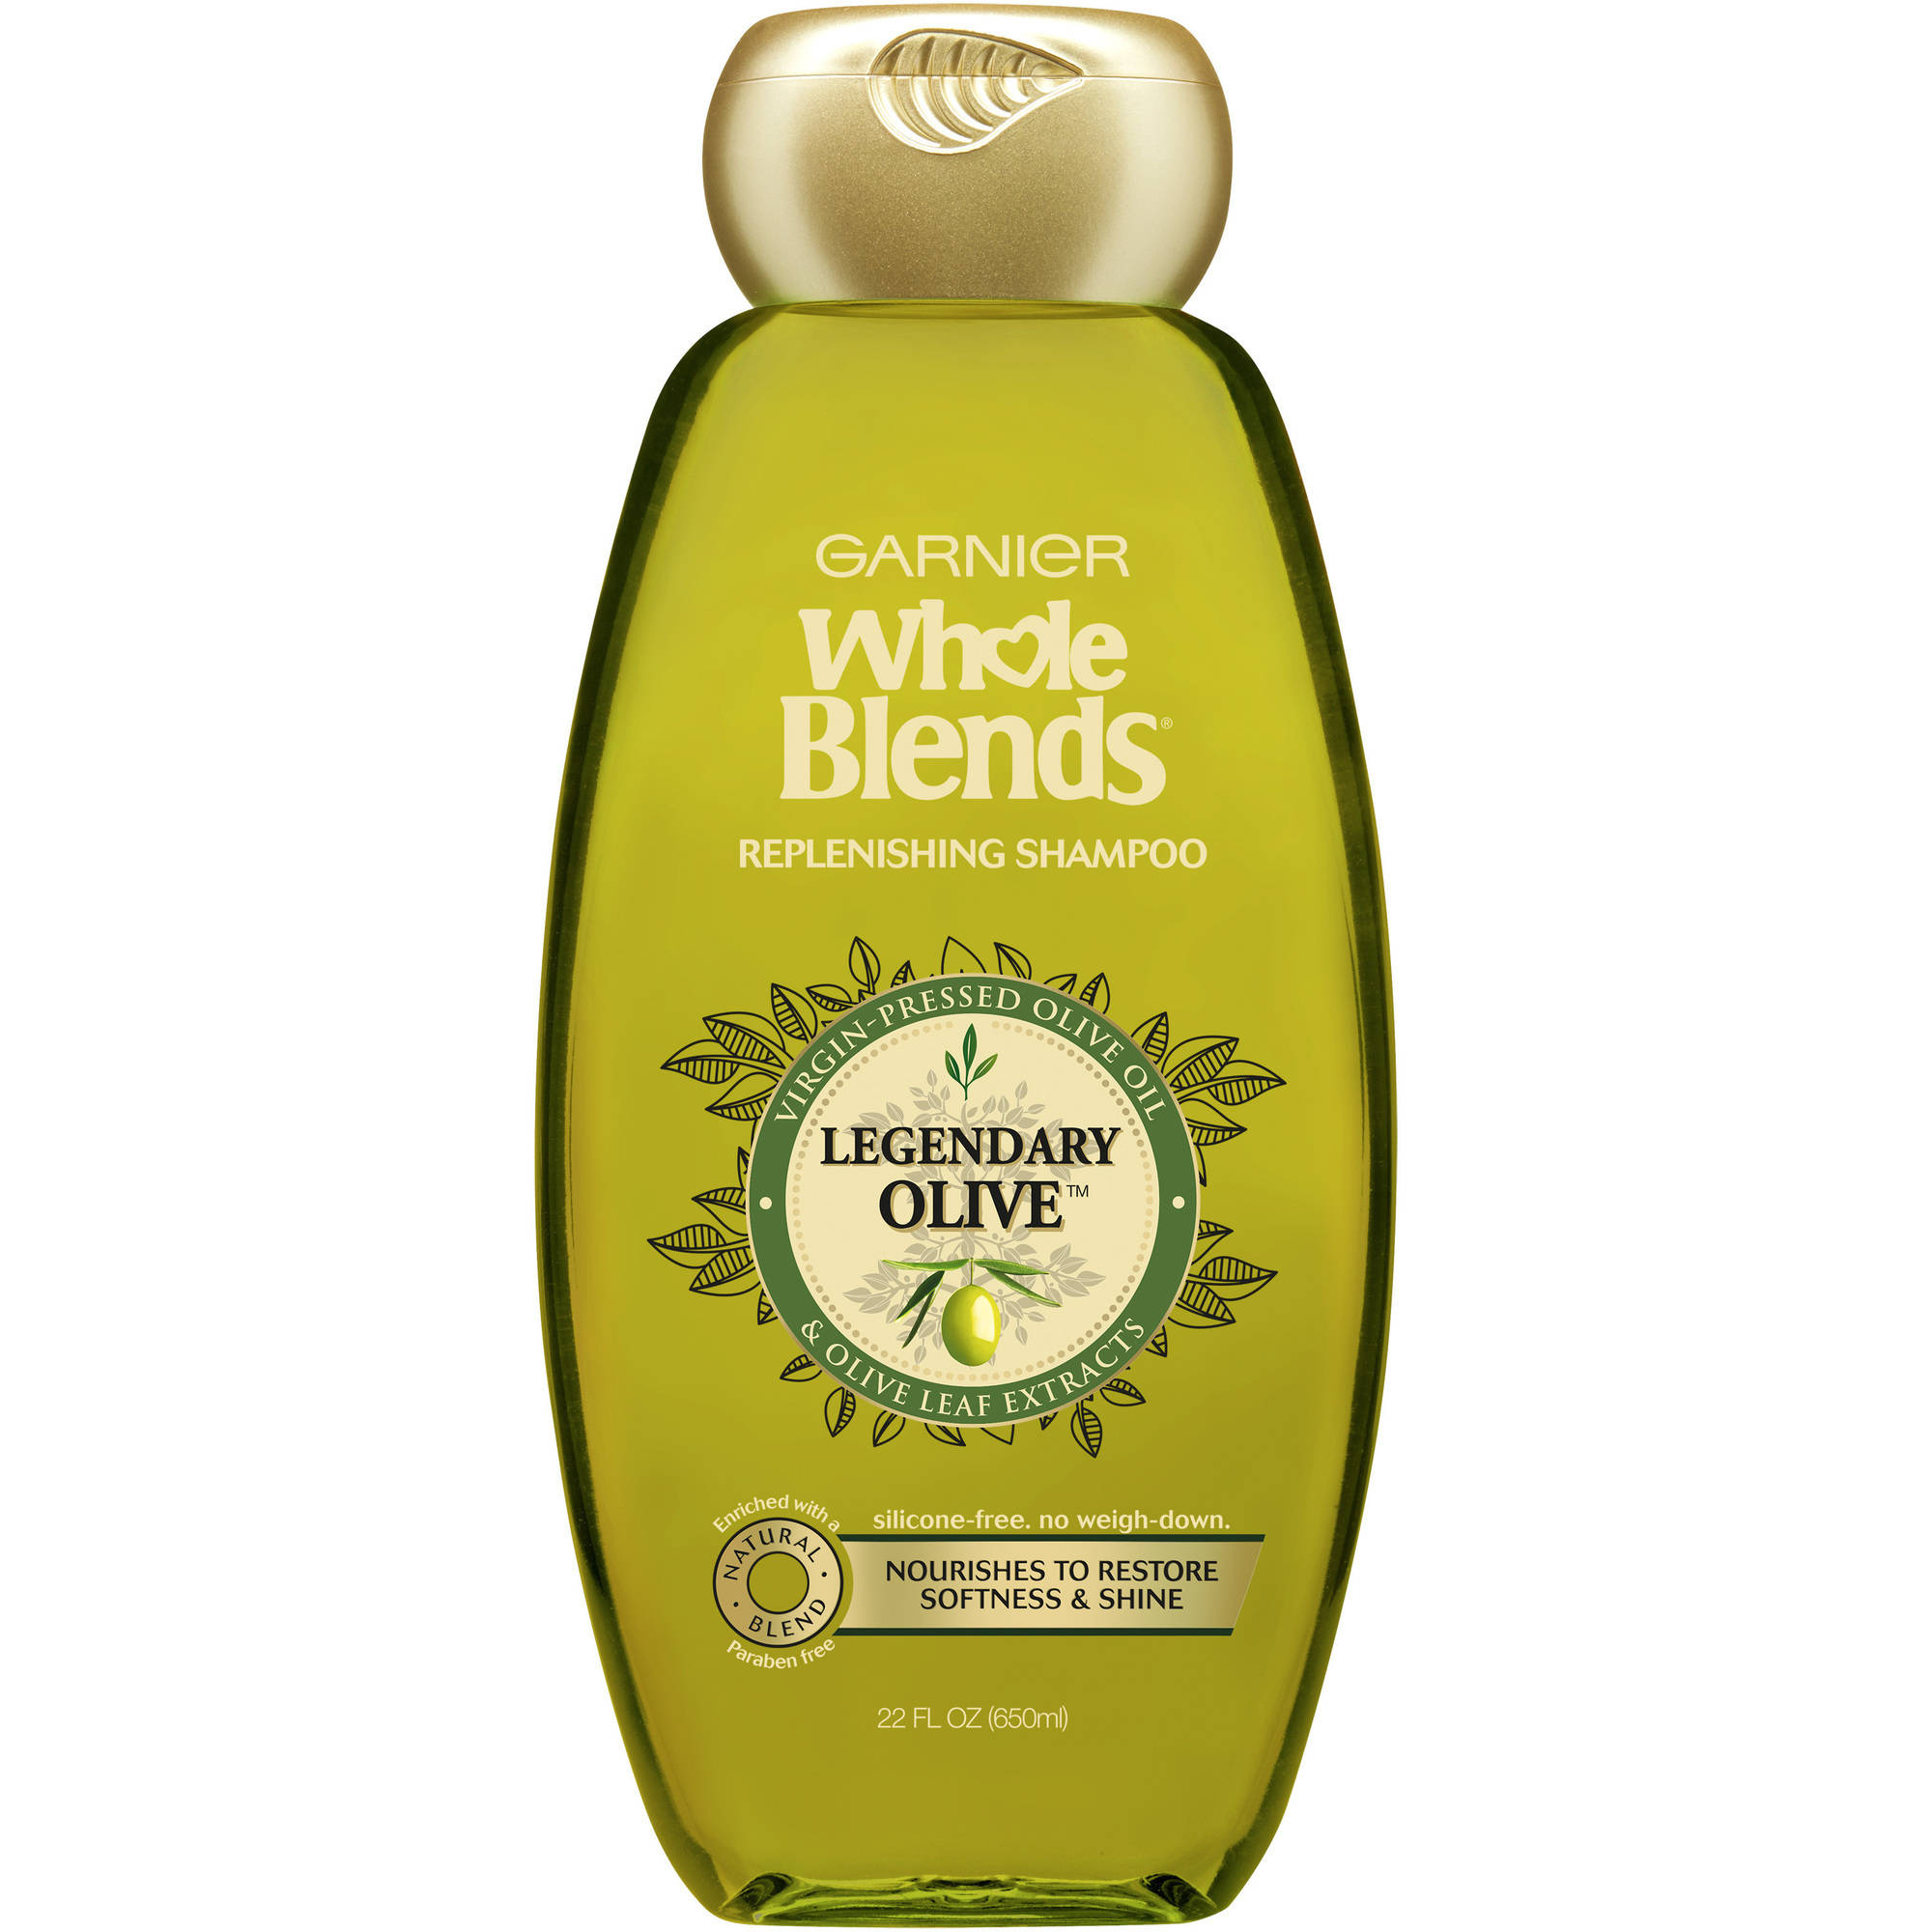 Garnier Whole Blends Replenishing Shampoo with Virgin-Pressed Olive Oil & Olive Leaf Extracts 22 FL OZ